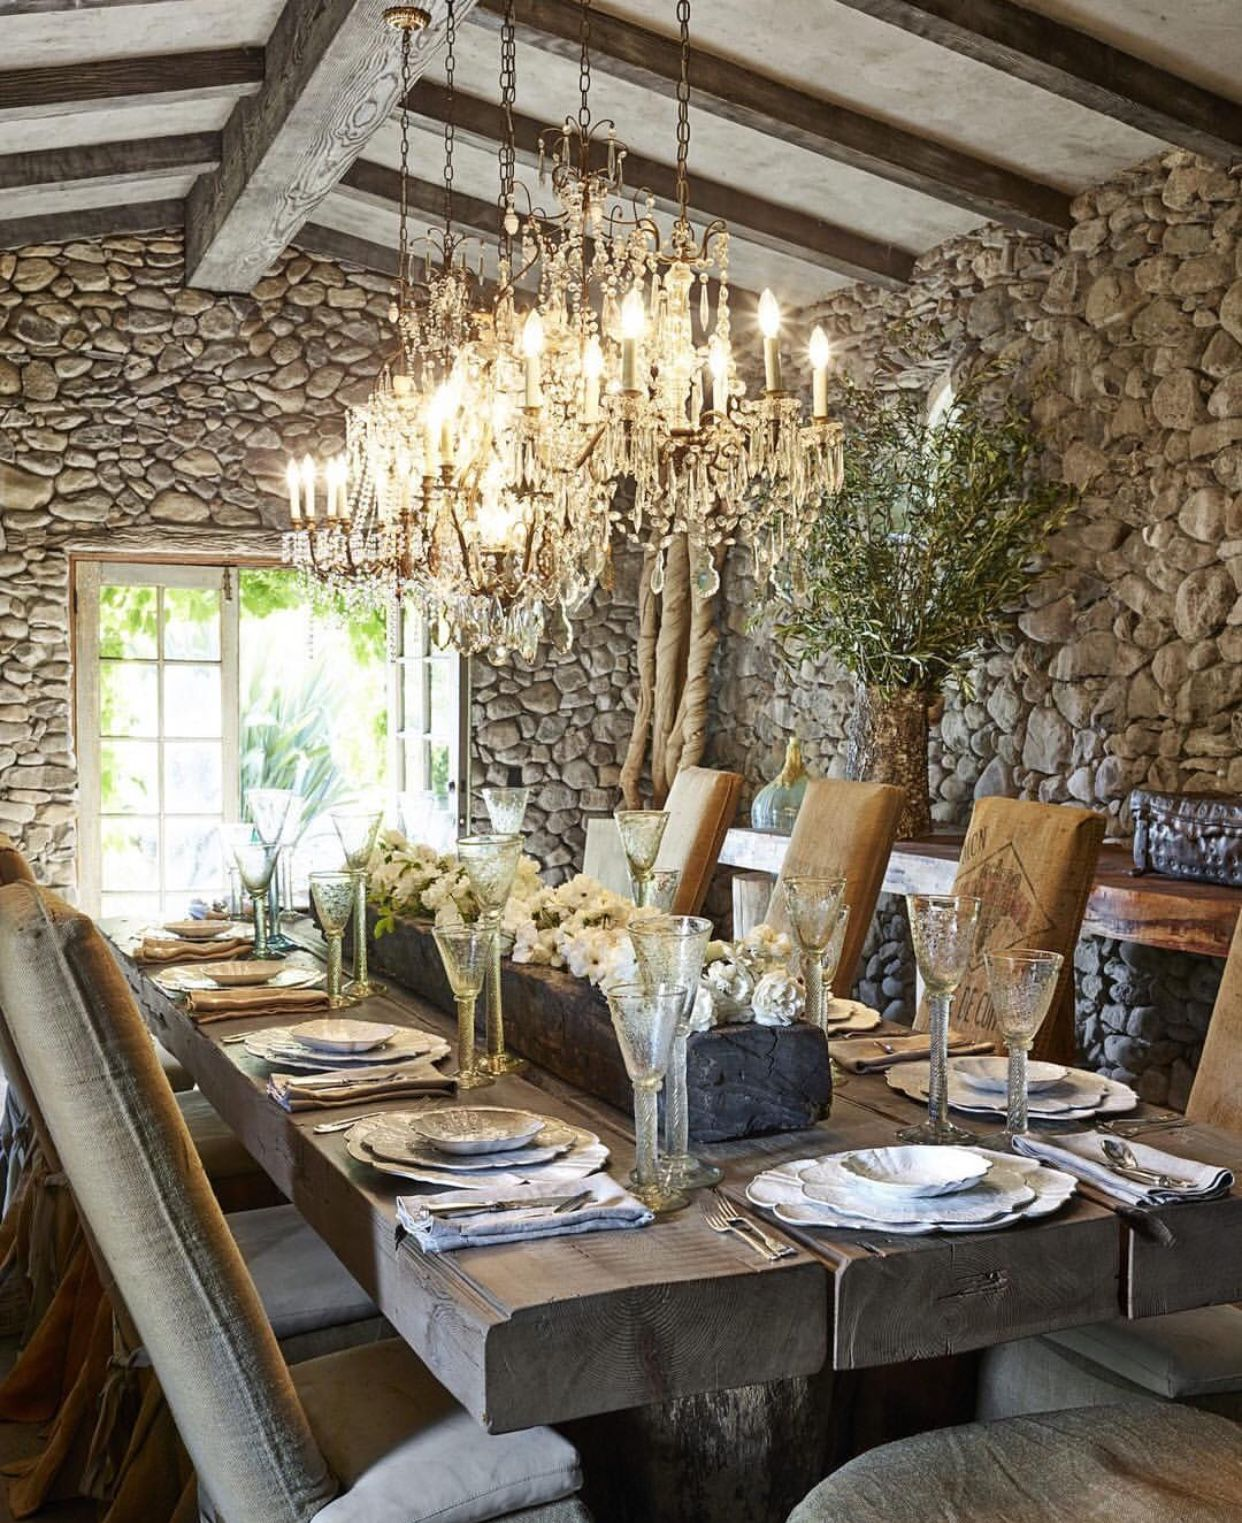 12 Rustic Dining Room Ideas: Pin By Shelly Fearno Waterman On Home